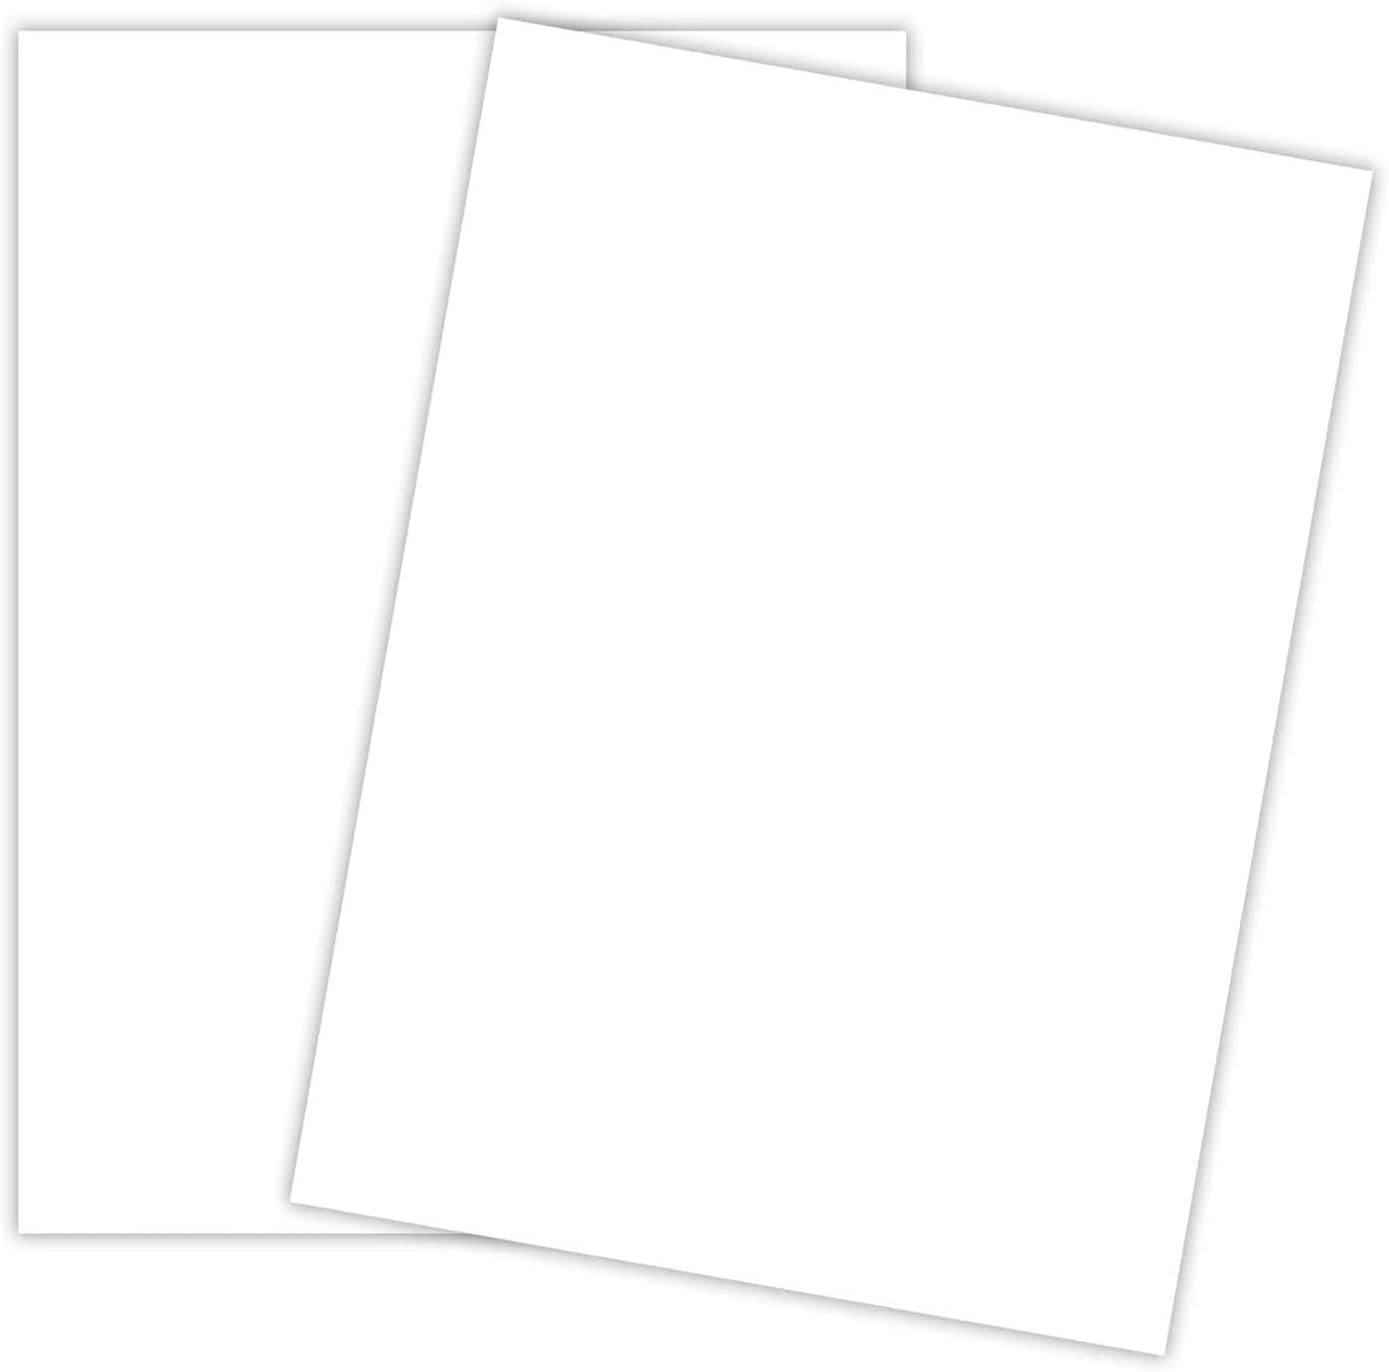 White Cardstock - Thick Paper for School, Arts and Crafts, Invitations, Stationary Printing | 65 lb Card Stock | 8.5 x 11 inch | Medium Weight Cover Stock (176 gsm) 96 Brightness | 50 Sheets Per Pack